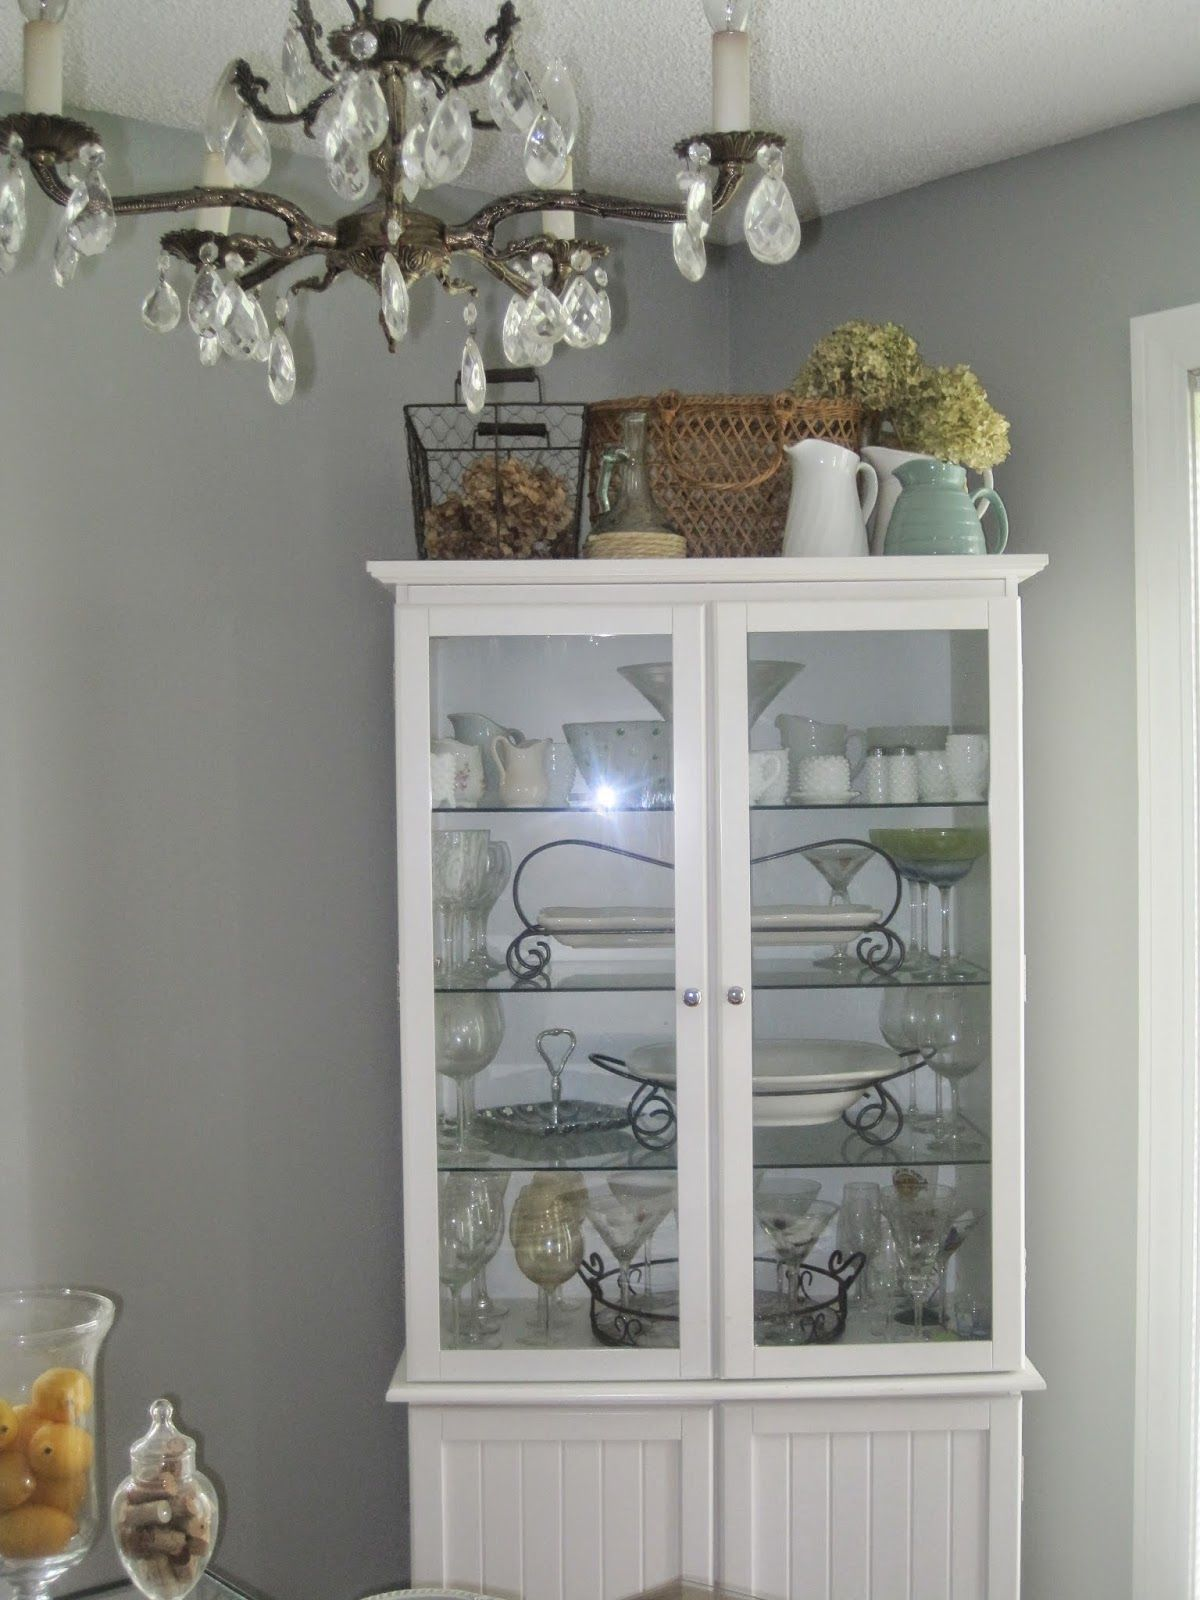 Driftwood Gray By Martha Stewart Glidden Paint From Home Depot Colors Pinterest